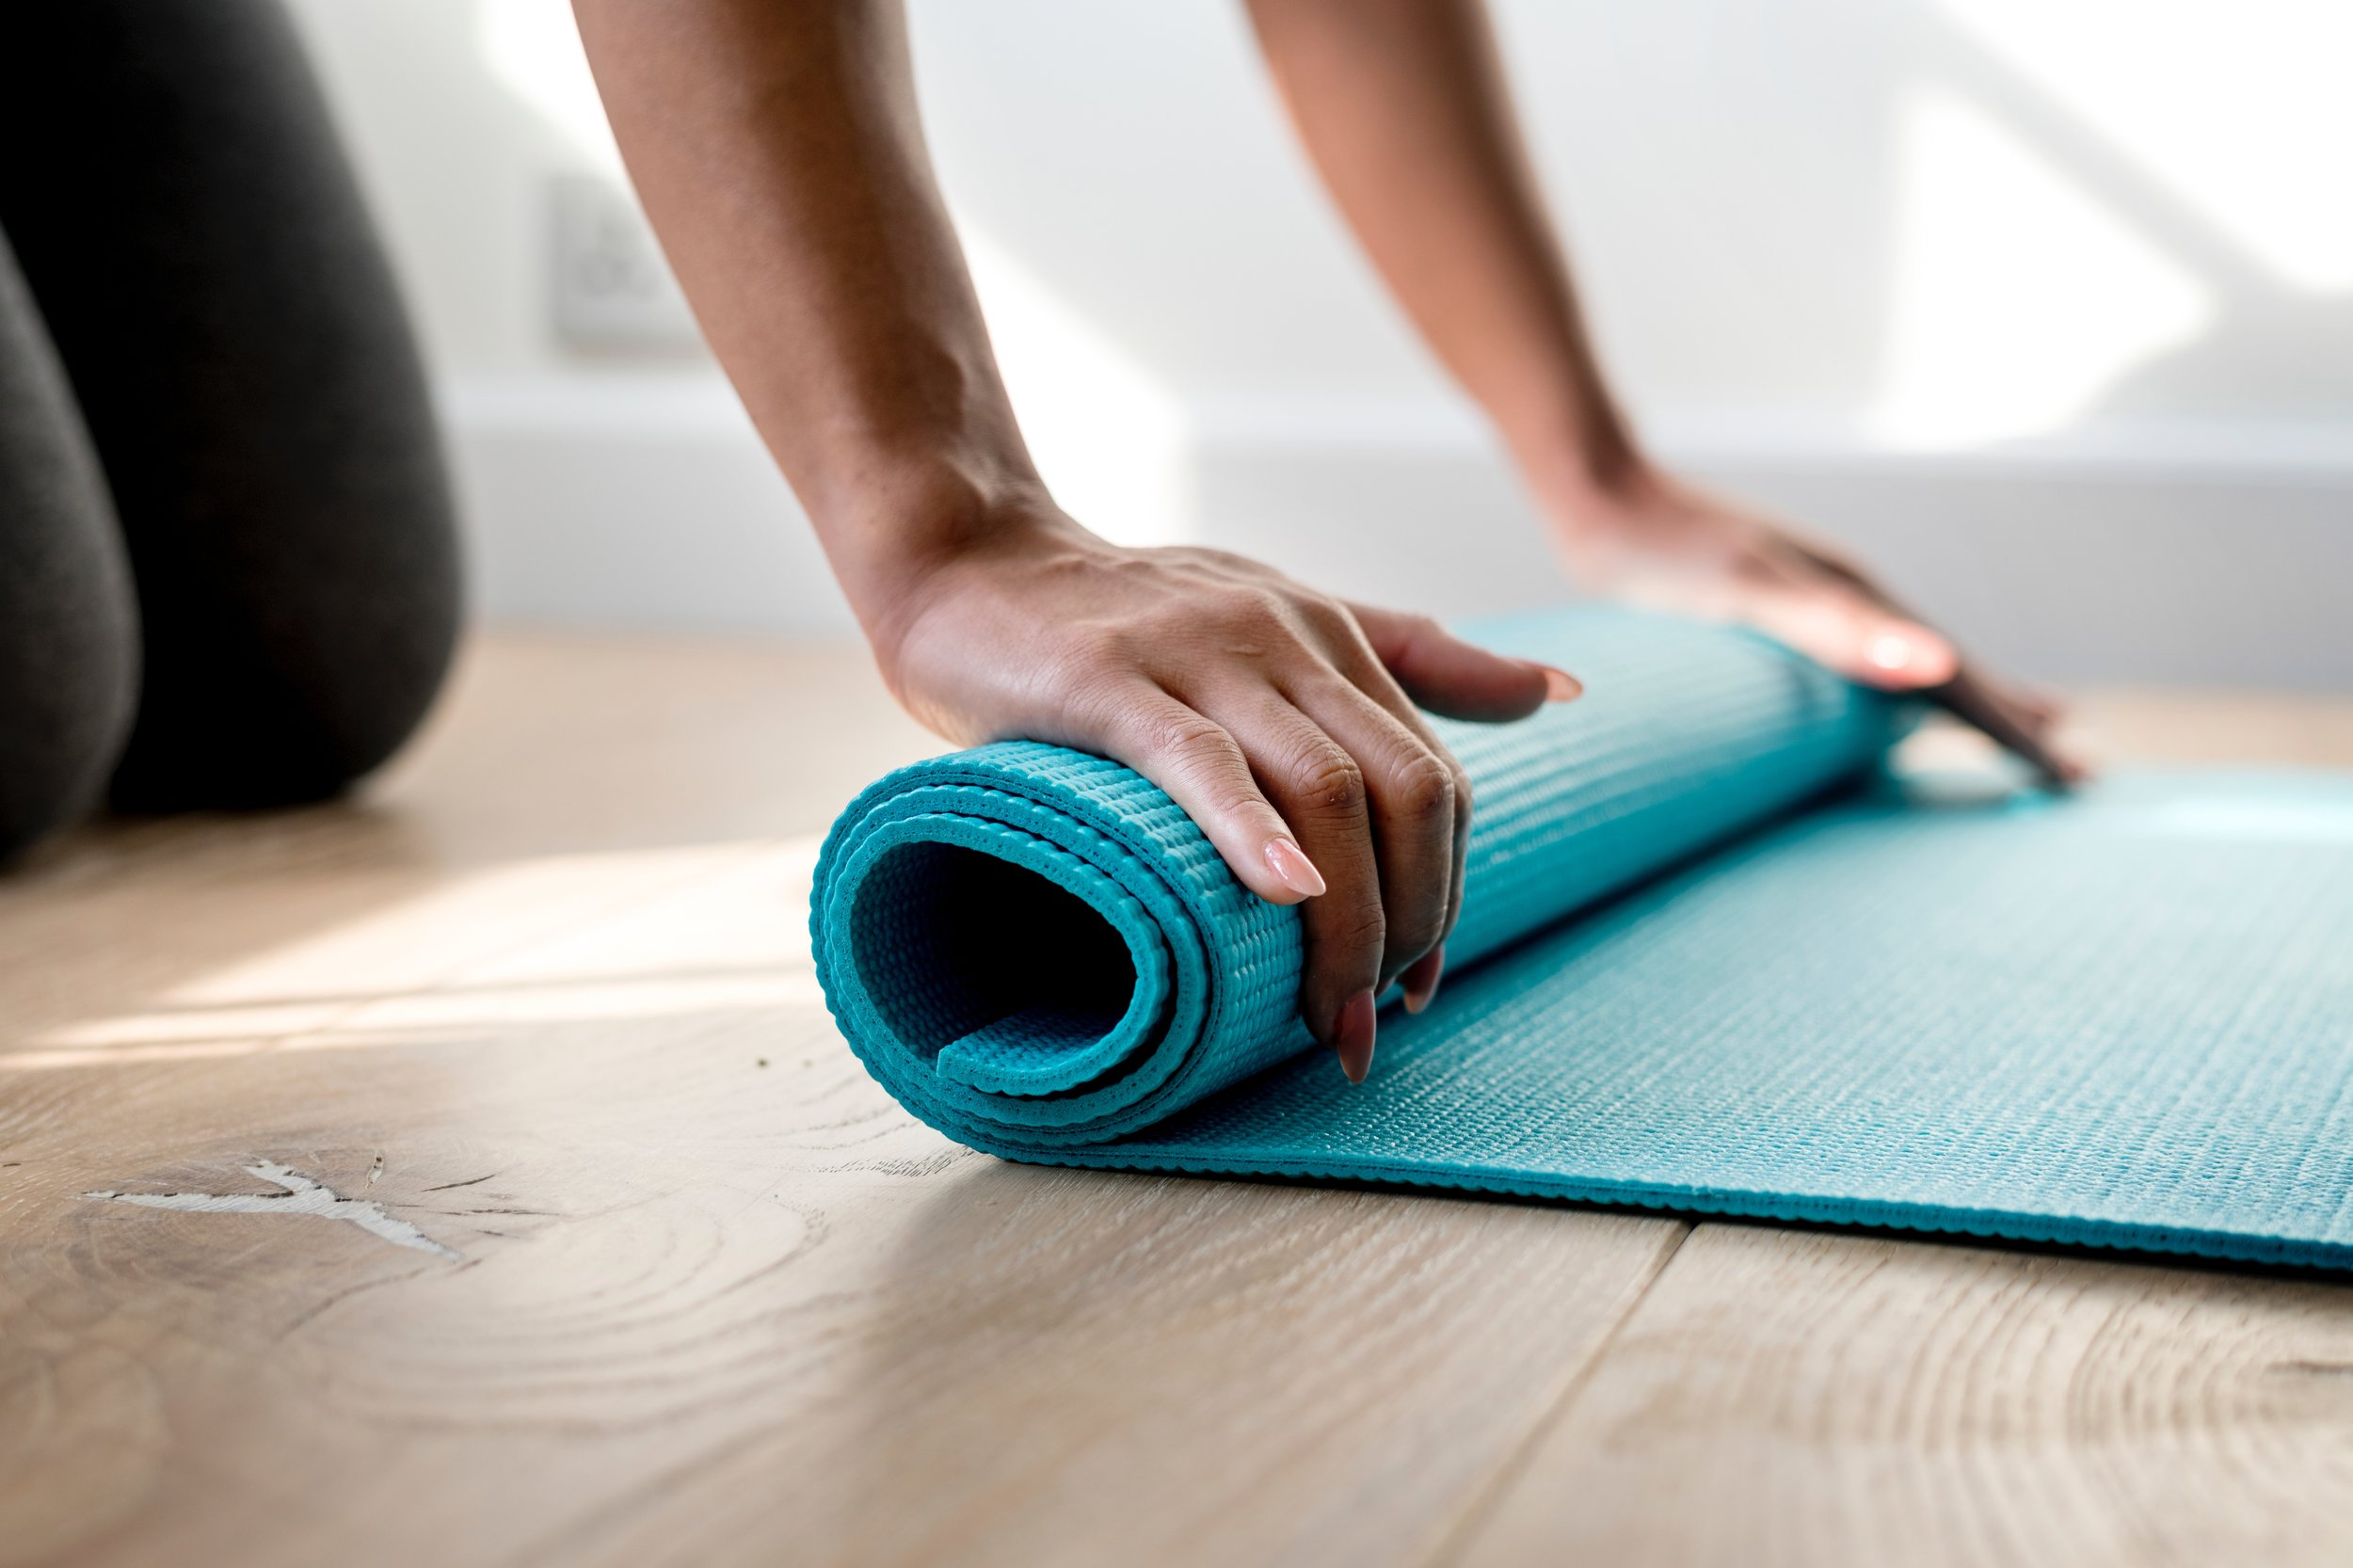 Image: A person unrolling a yoga mat on the ground. Photo:  rawpixel  on  Unsplash